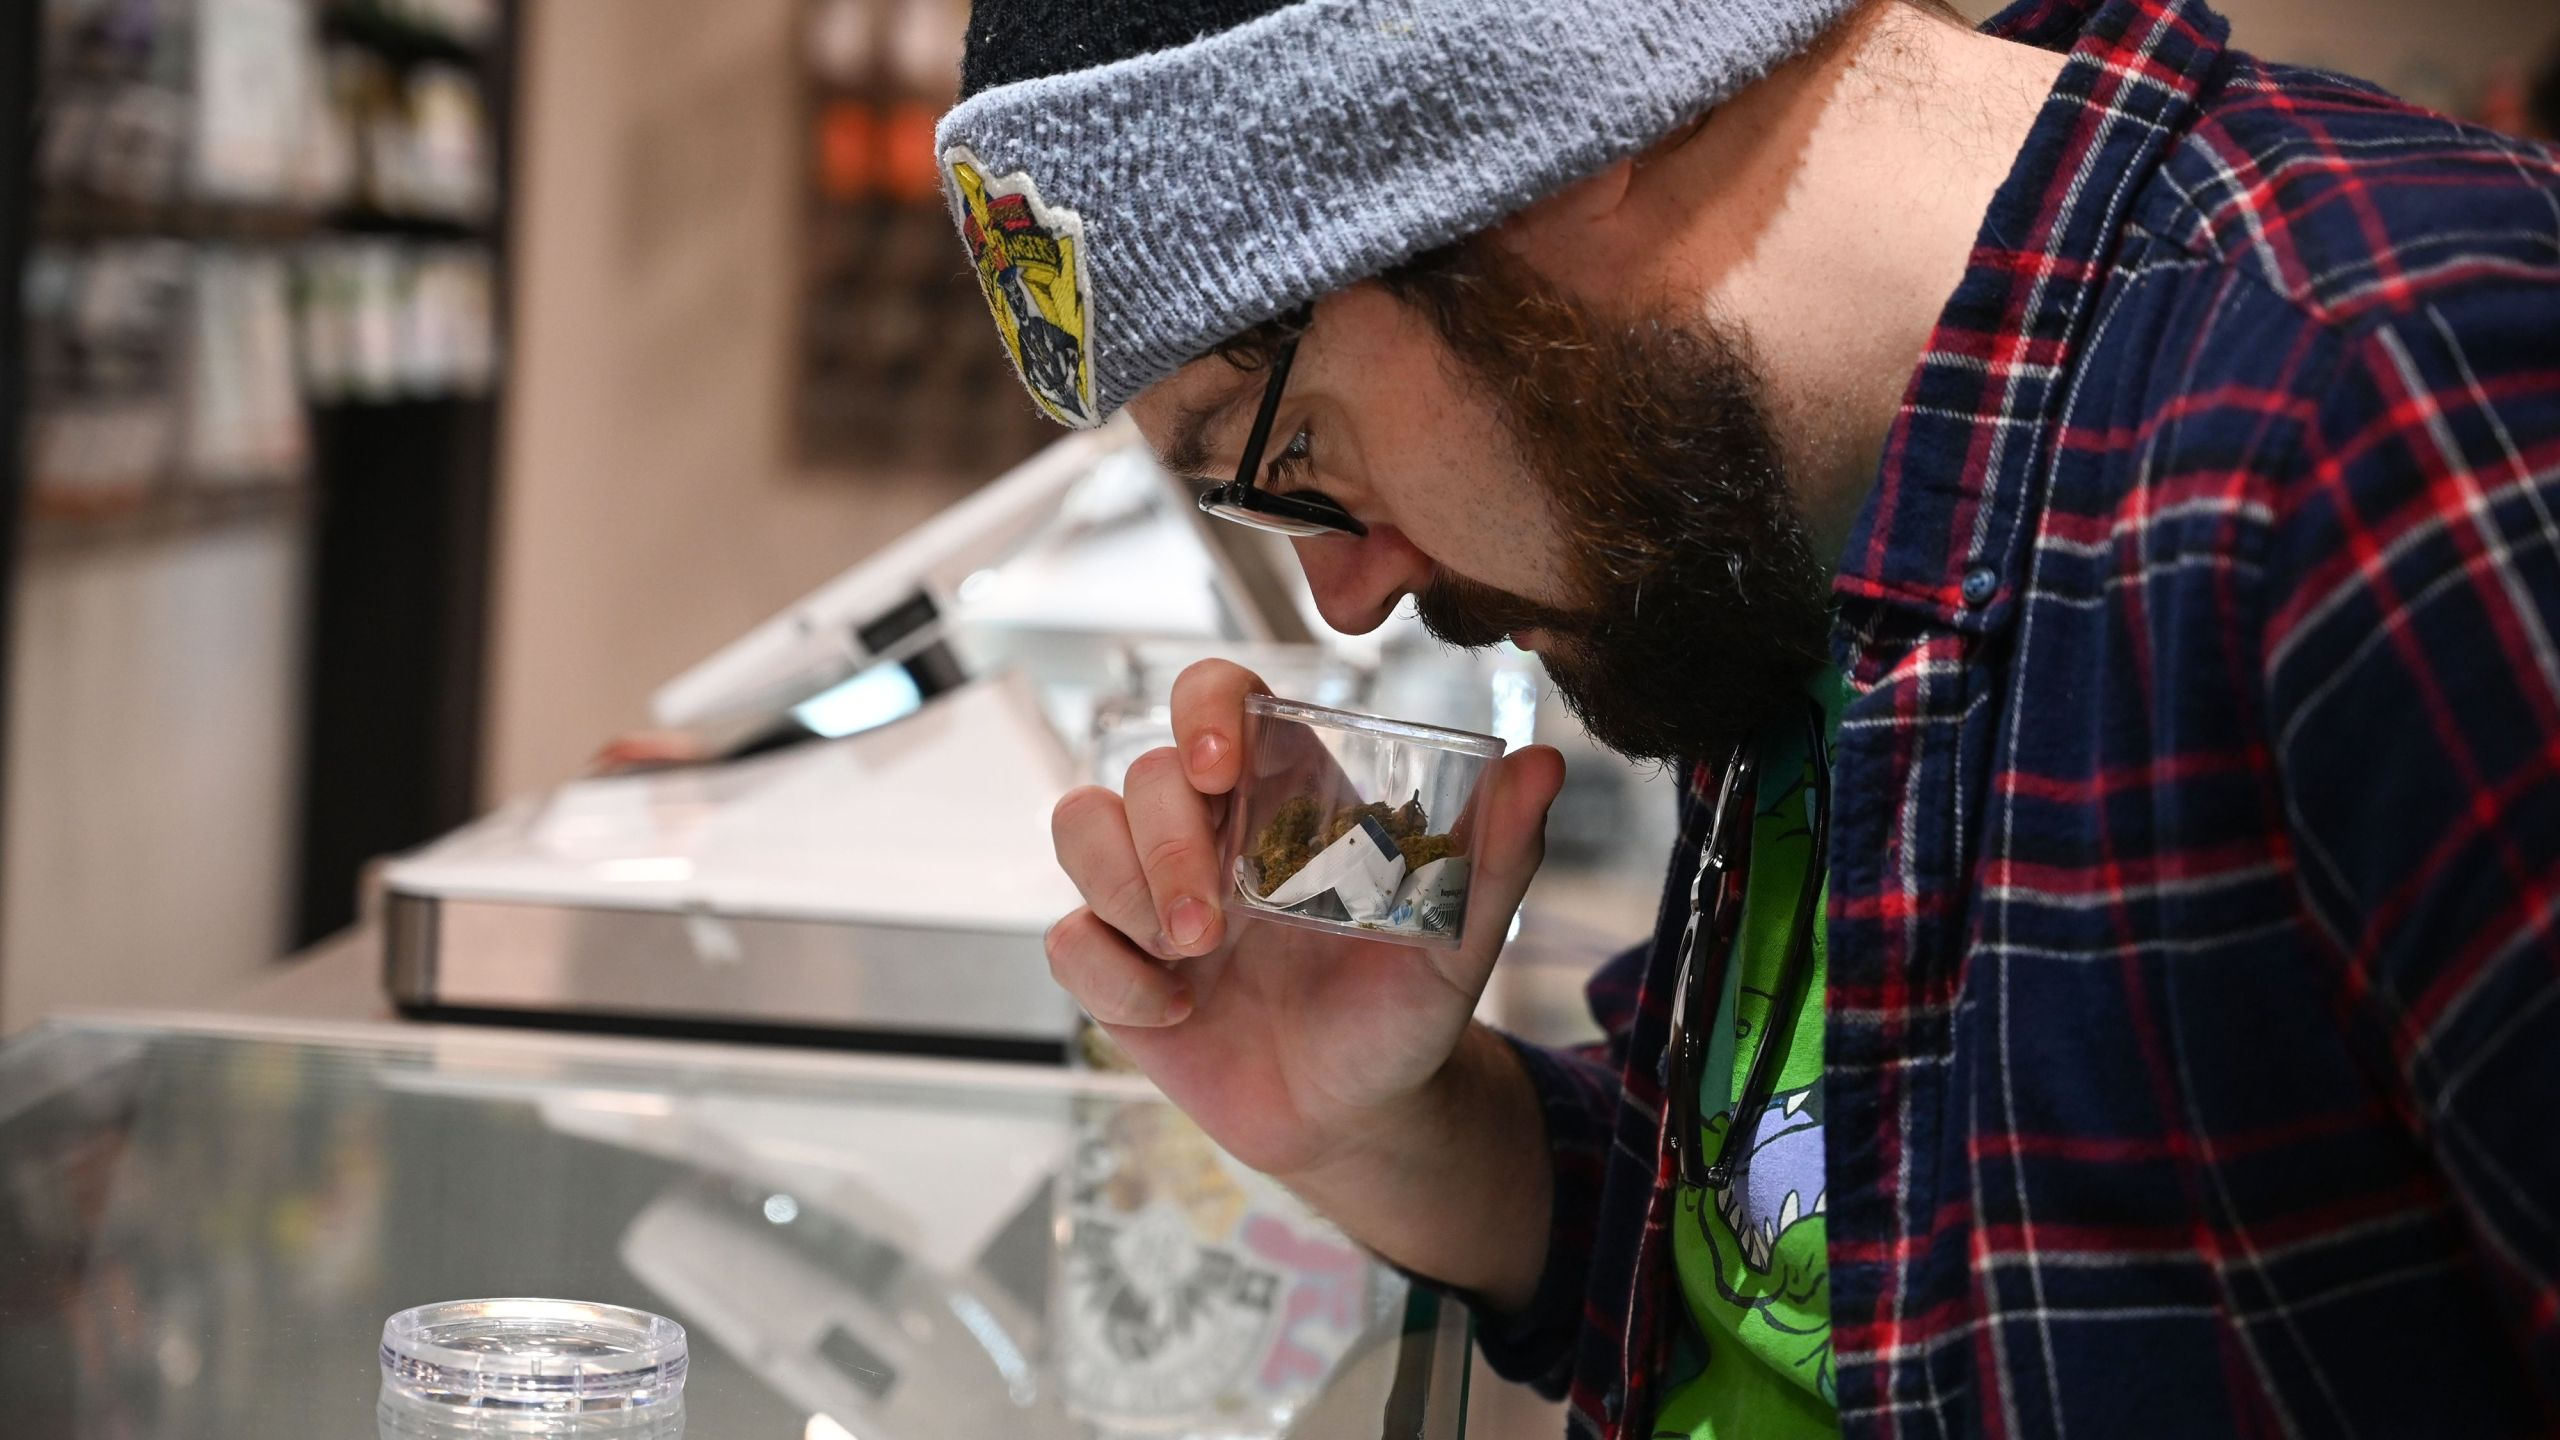 Cannabis tourist Dan Chlebanowski smells marijuana for sale at a dispensary in Los Angeles on Jan. 24, 2019. (Credit: Robyn Beck / AFP / Getty Images)